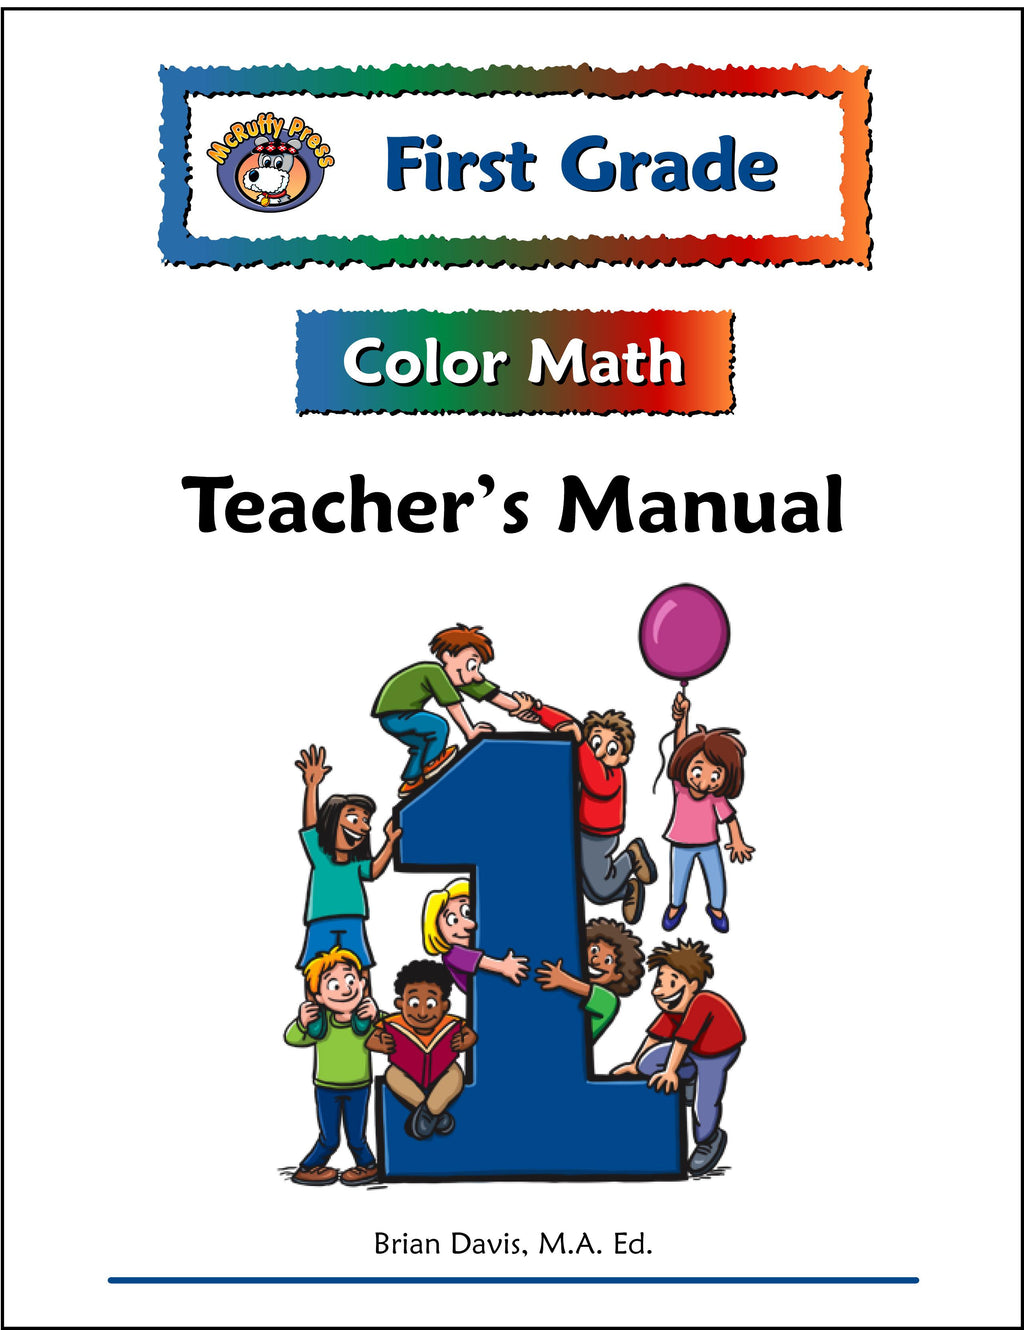 First Grade Color Math Teacher's Manual - McRuffy Press